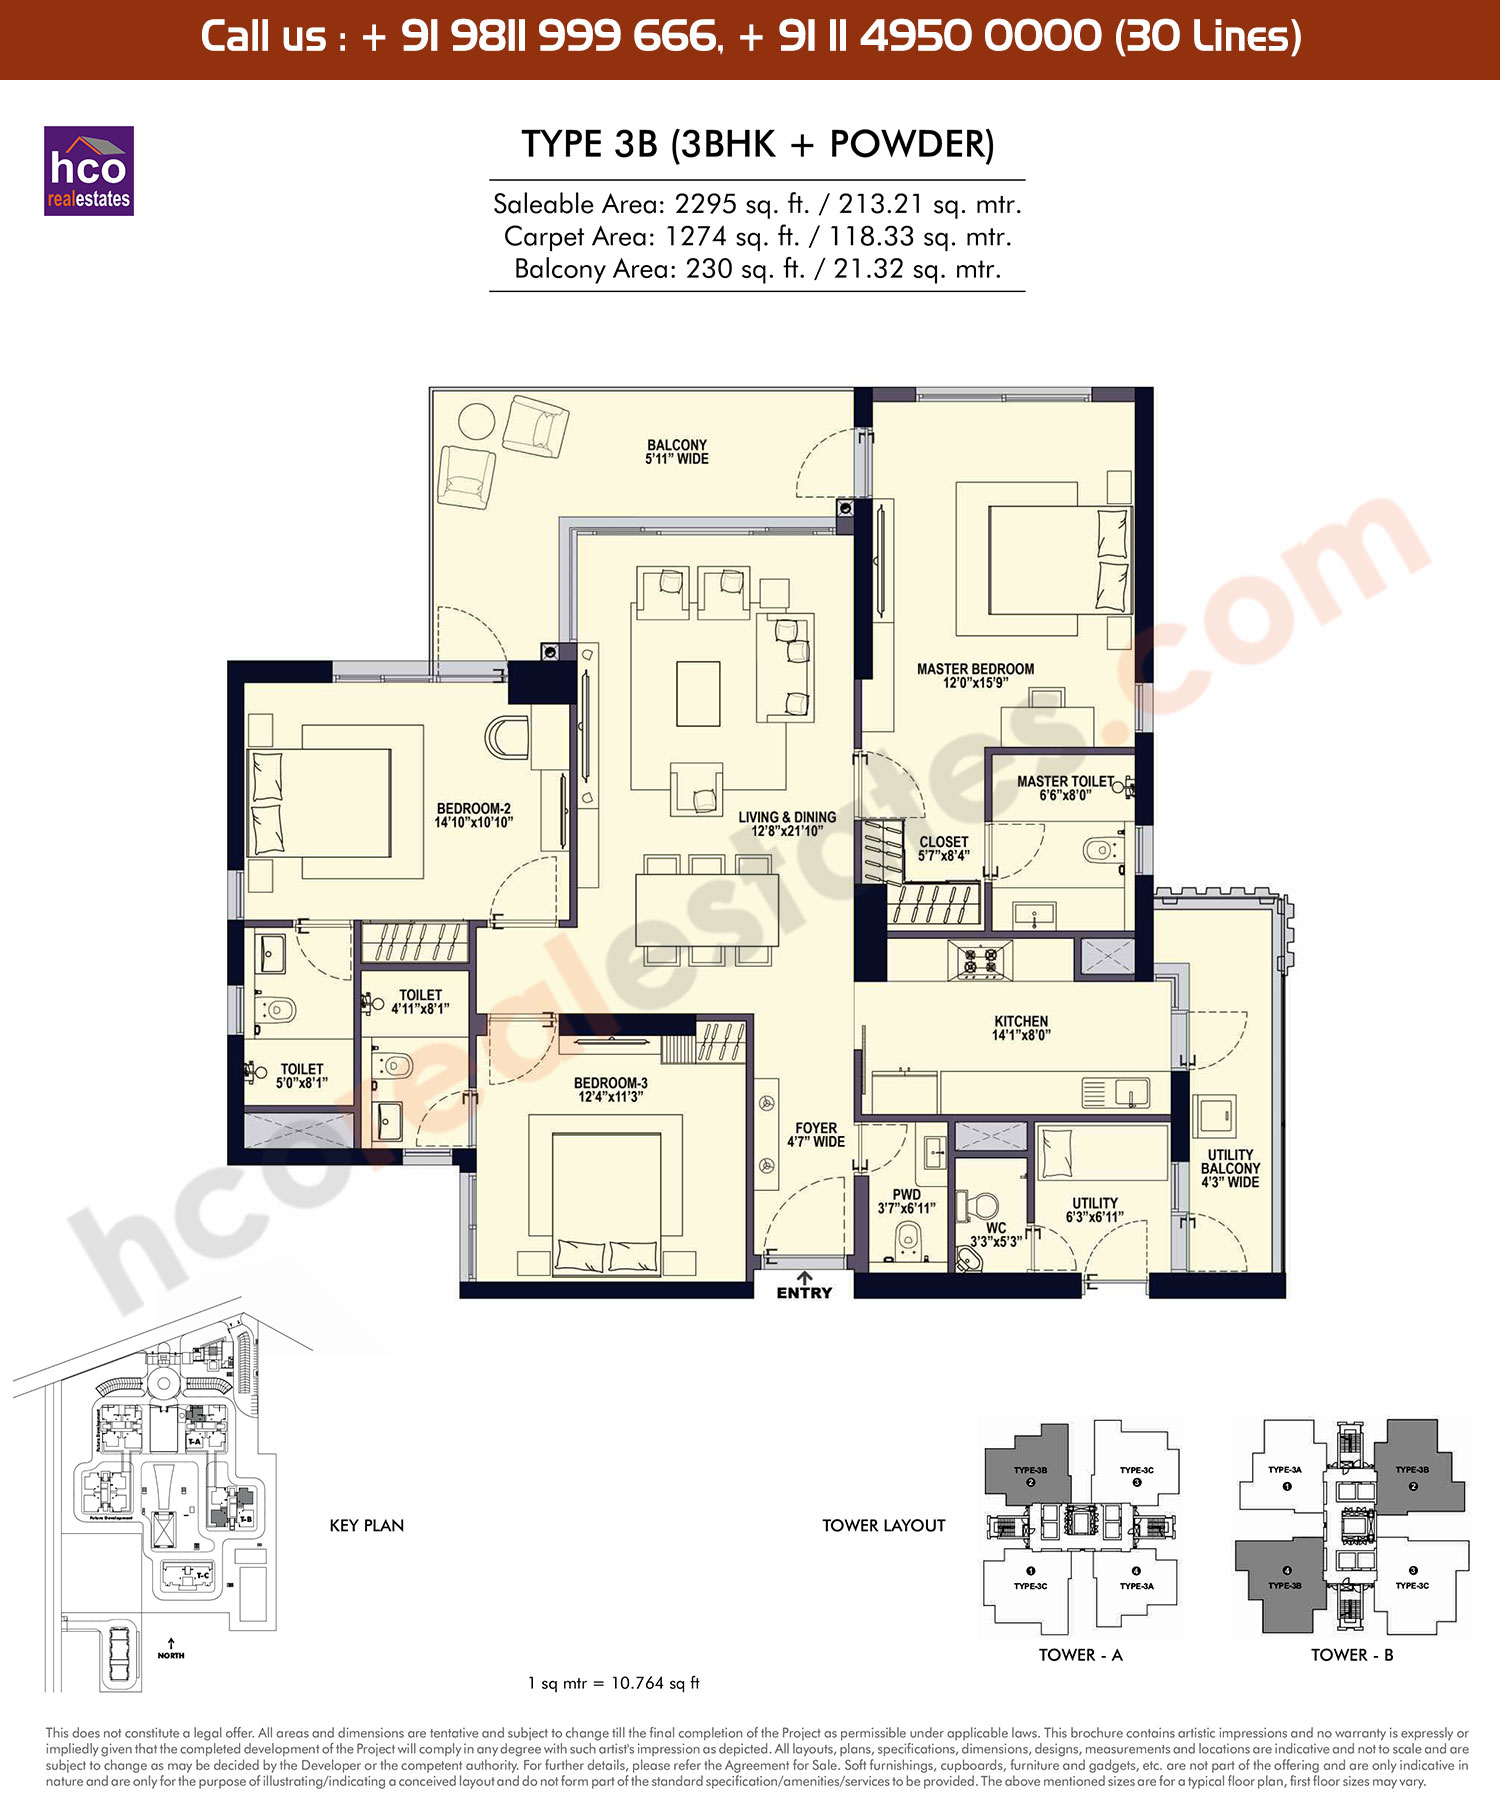 3 BHK + Powder, Type – 3B: 2295 Sq. Ft.